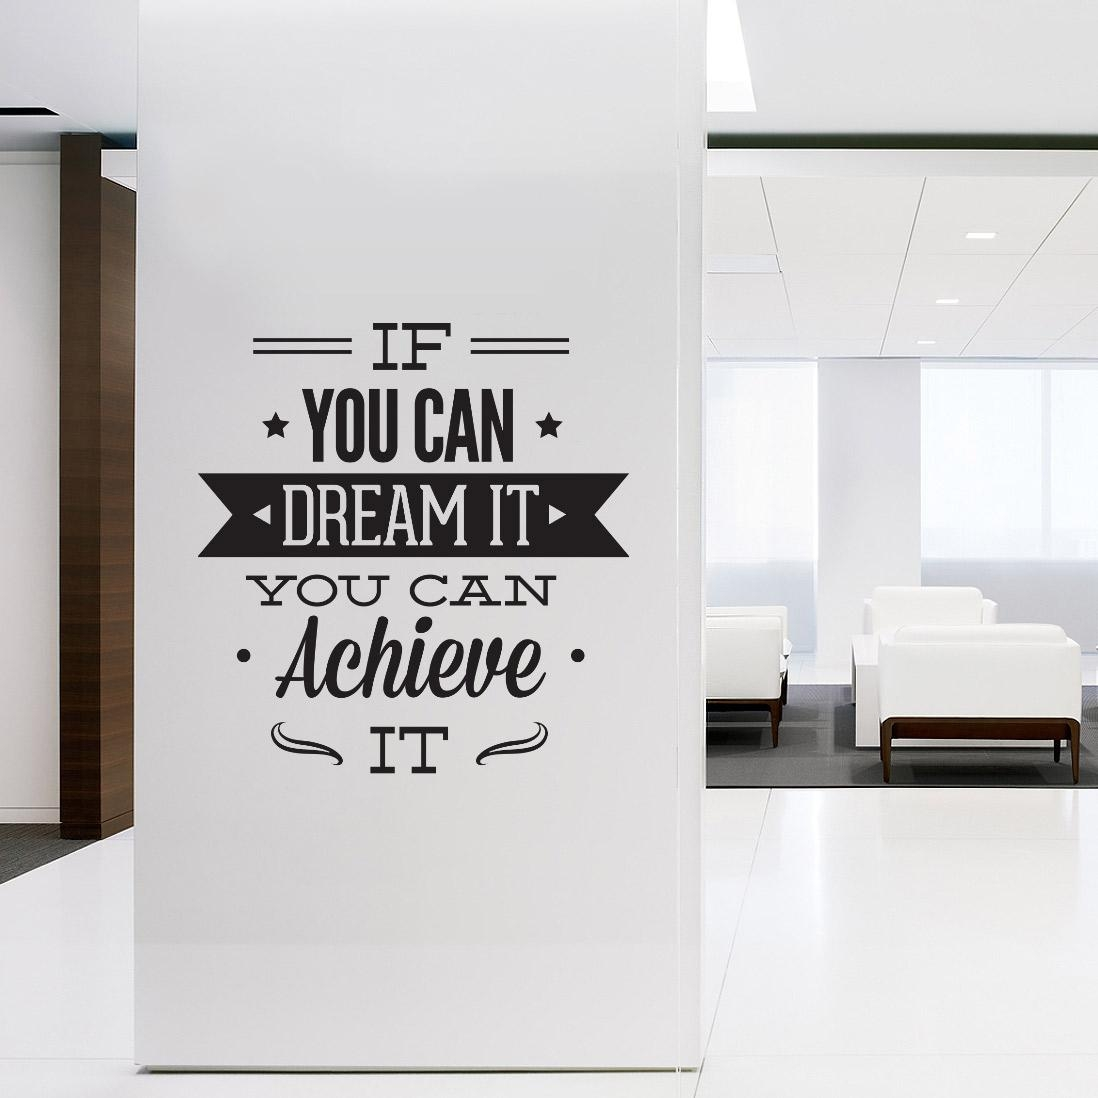 Office Wall Decals Art Ideas | Inspiration Home Designs Within Inspirational Wall Decals For Office (Image 18 of 20)